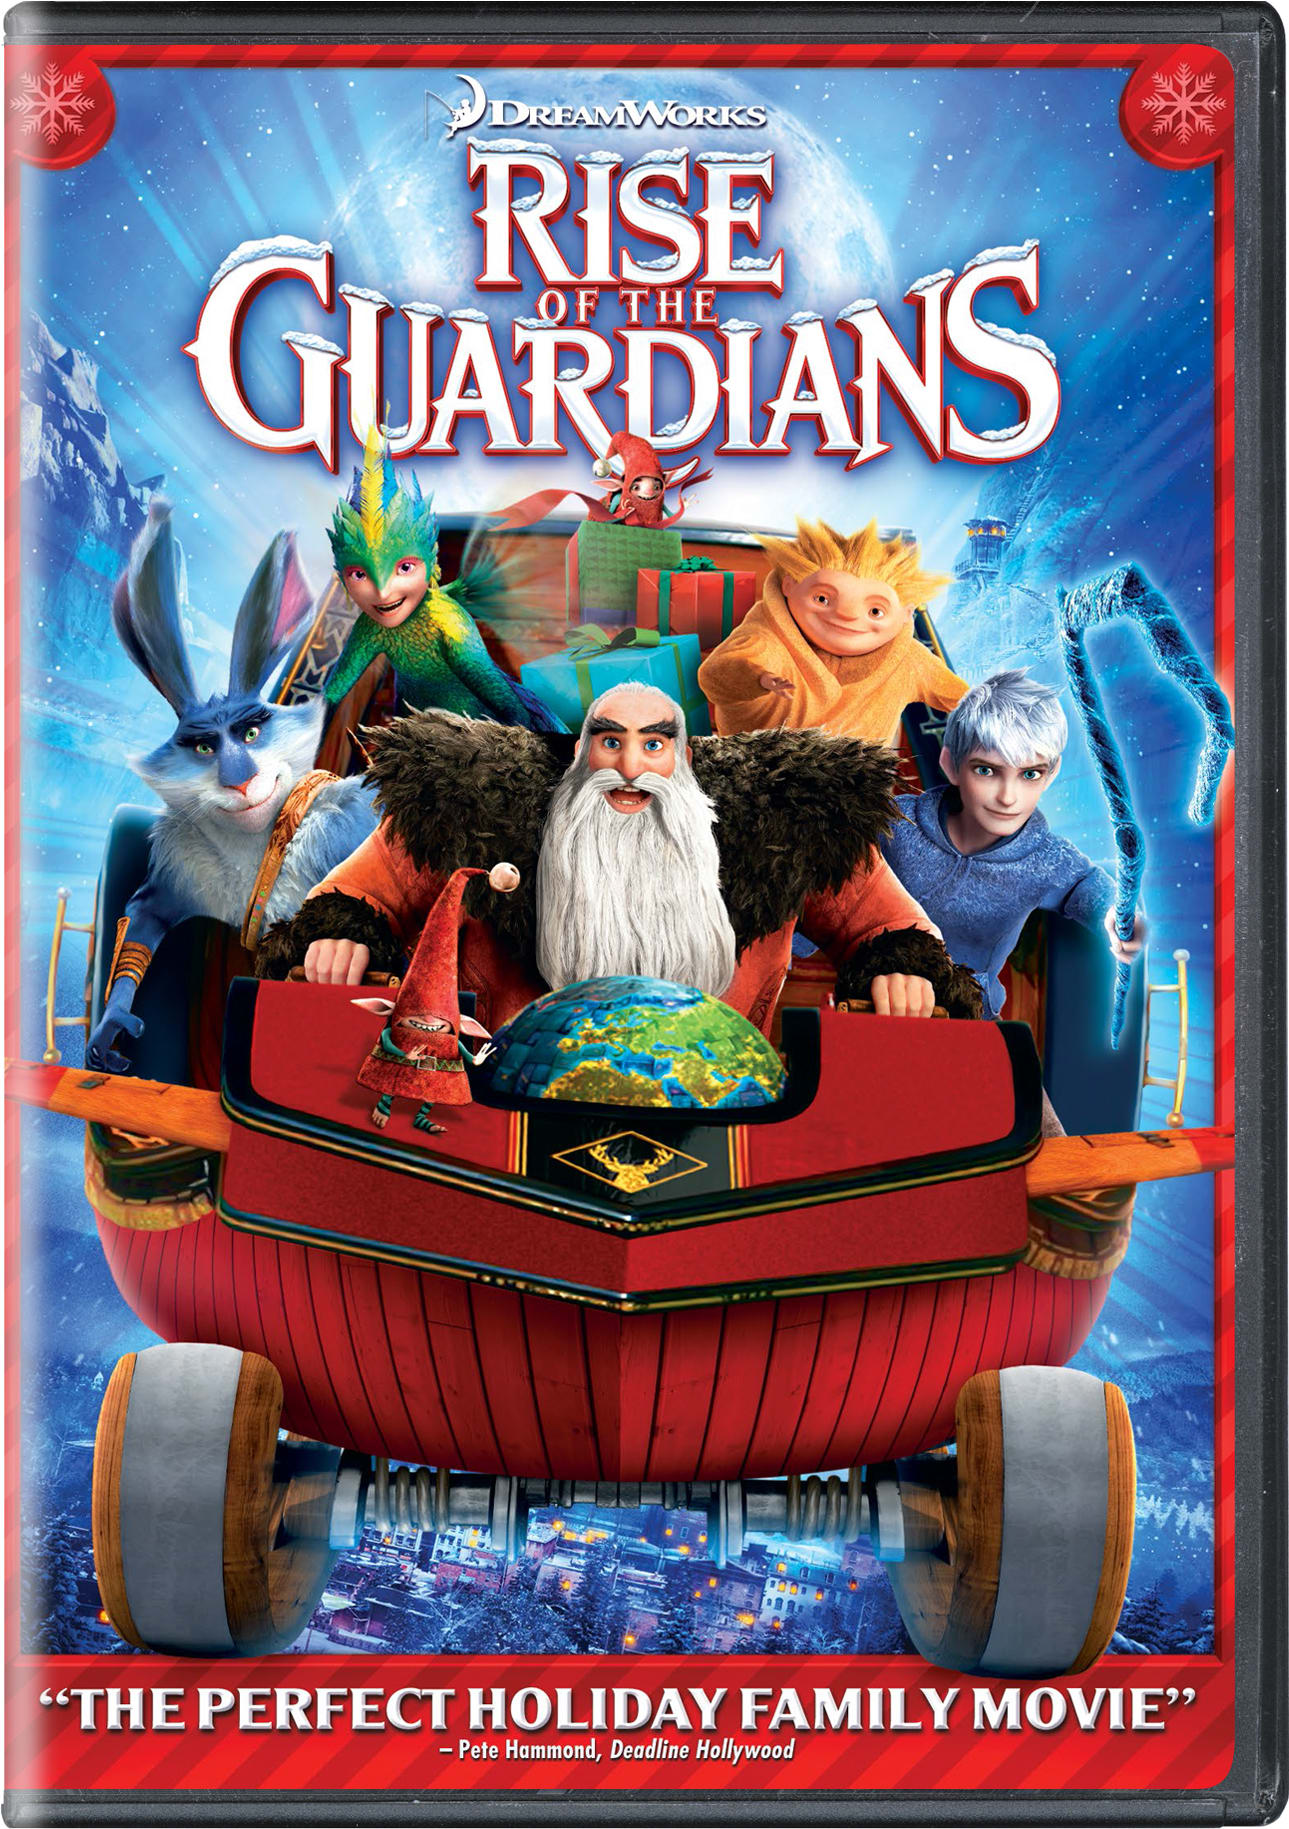 Rise of the Guardians (Holiday Art) [DVD]